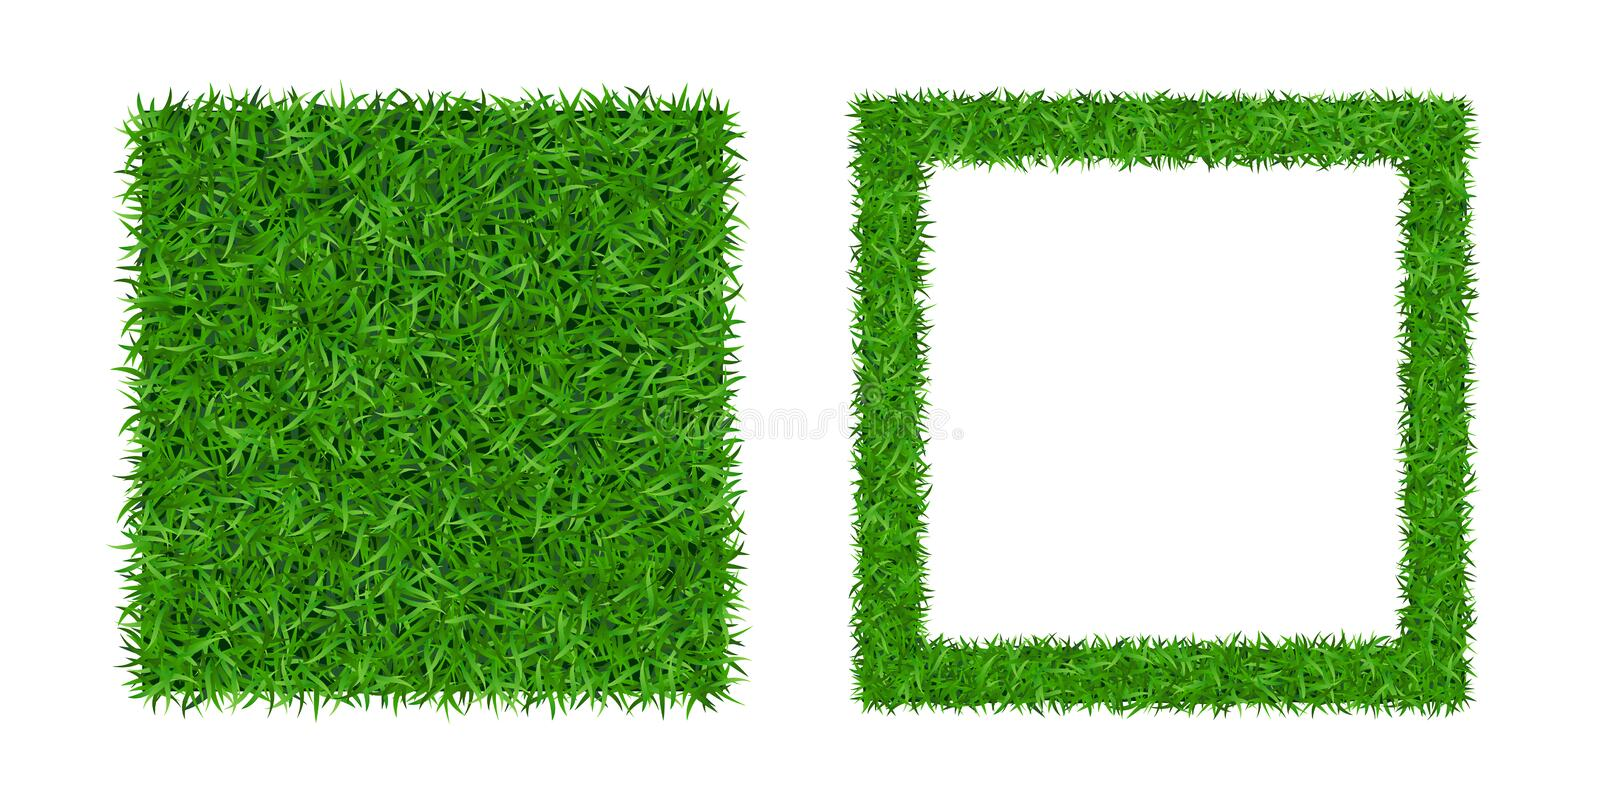 Green grass isolated background 3D set. Lawn greenery nature frame. Abstract soccer field texture square border. Ground vector illustration